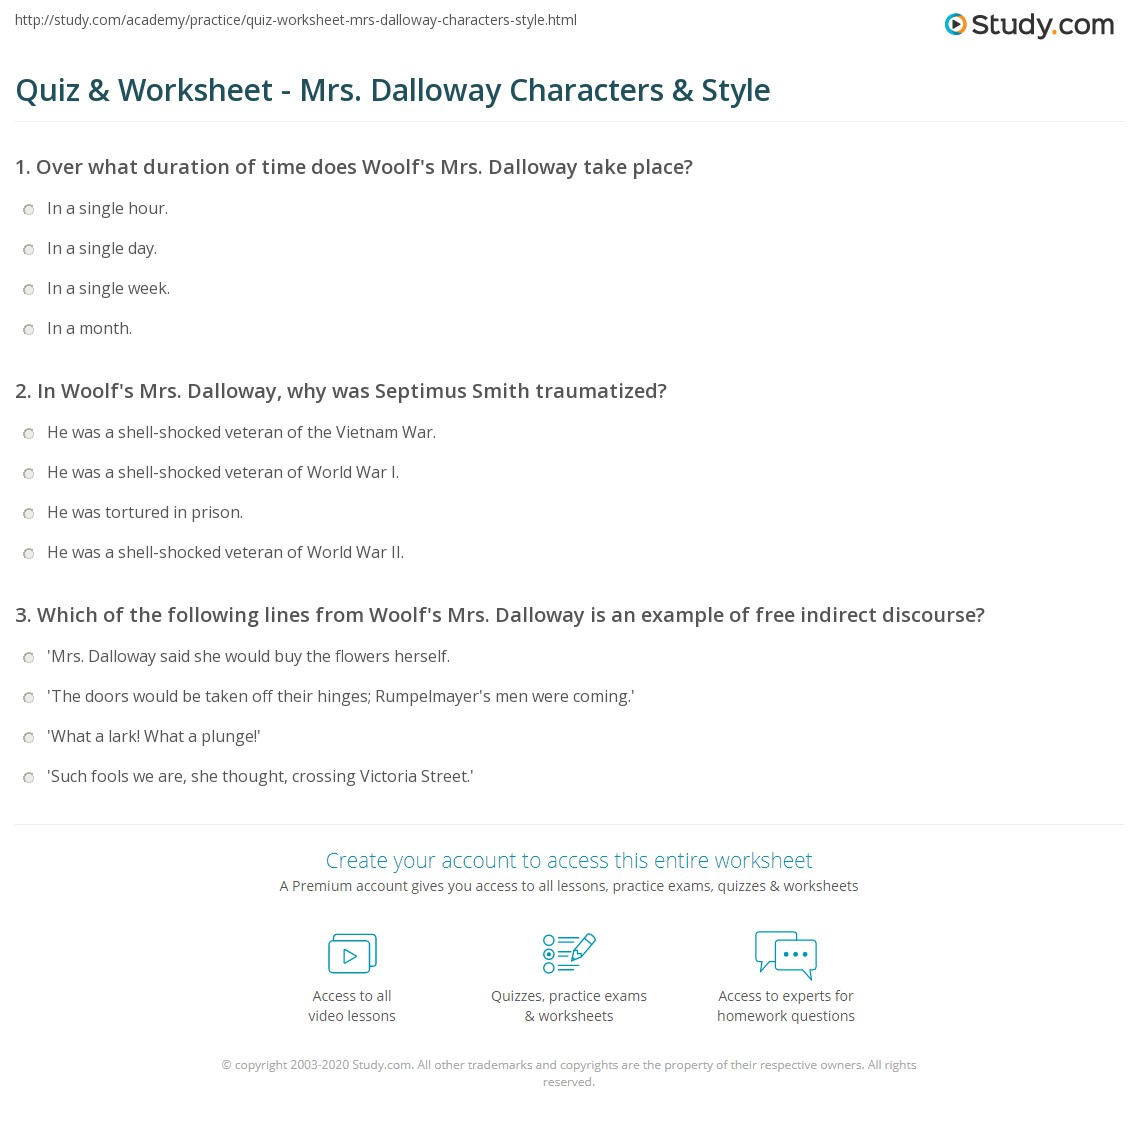 quiz worksheet mrs dalloway characters style com print mrs dalloway analysis of characters and style worksheet